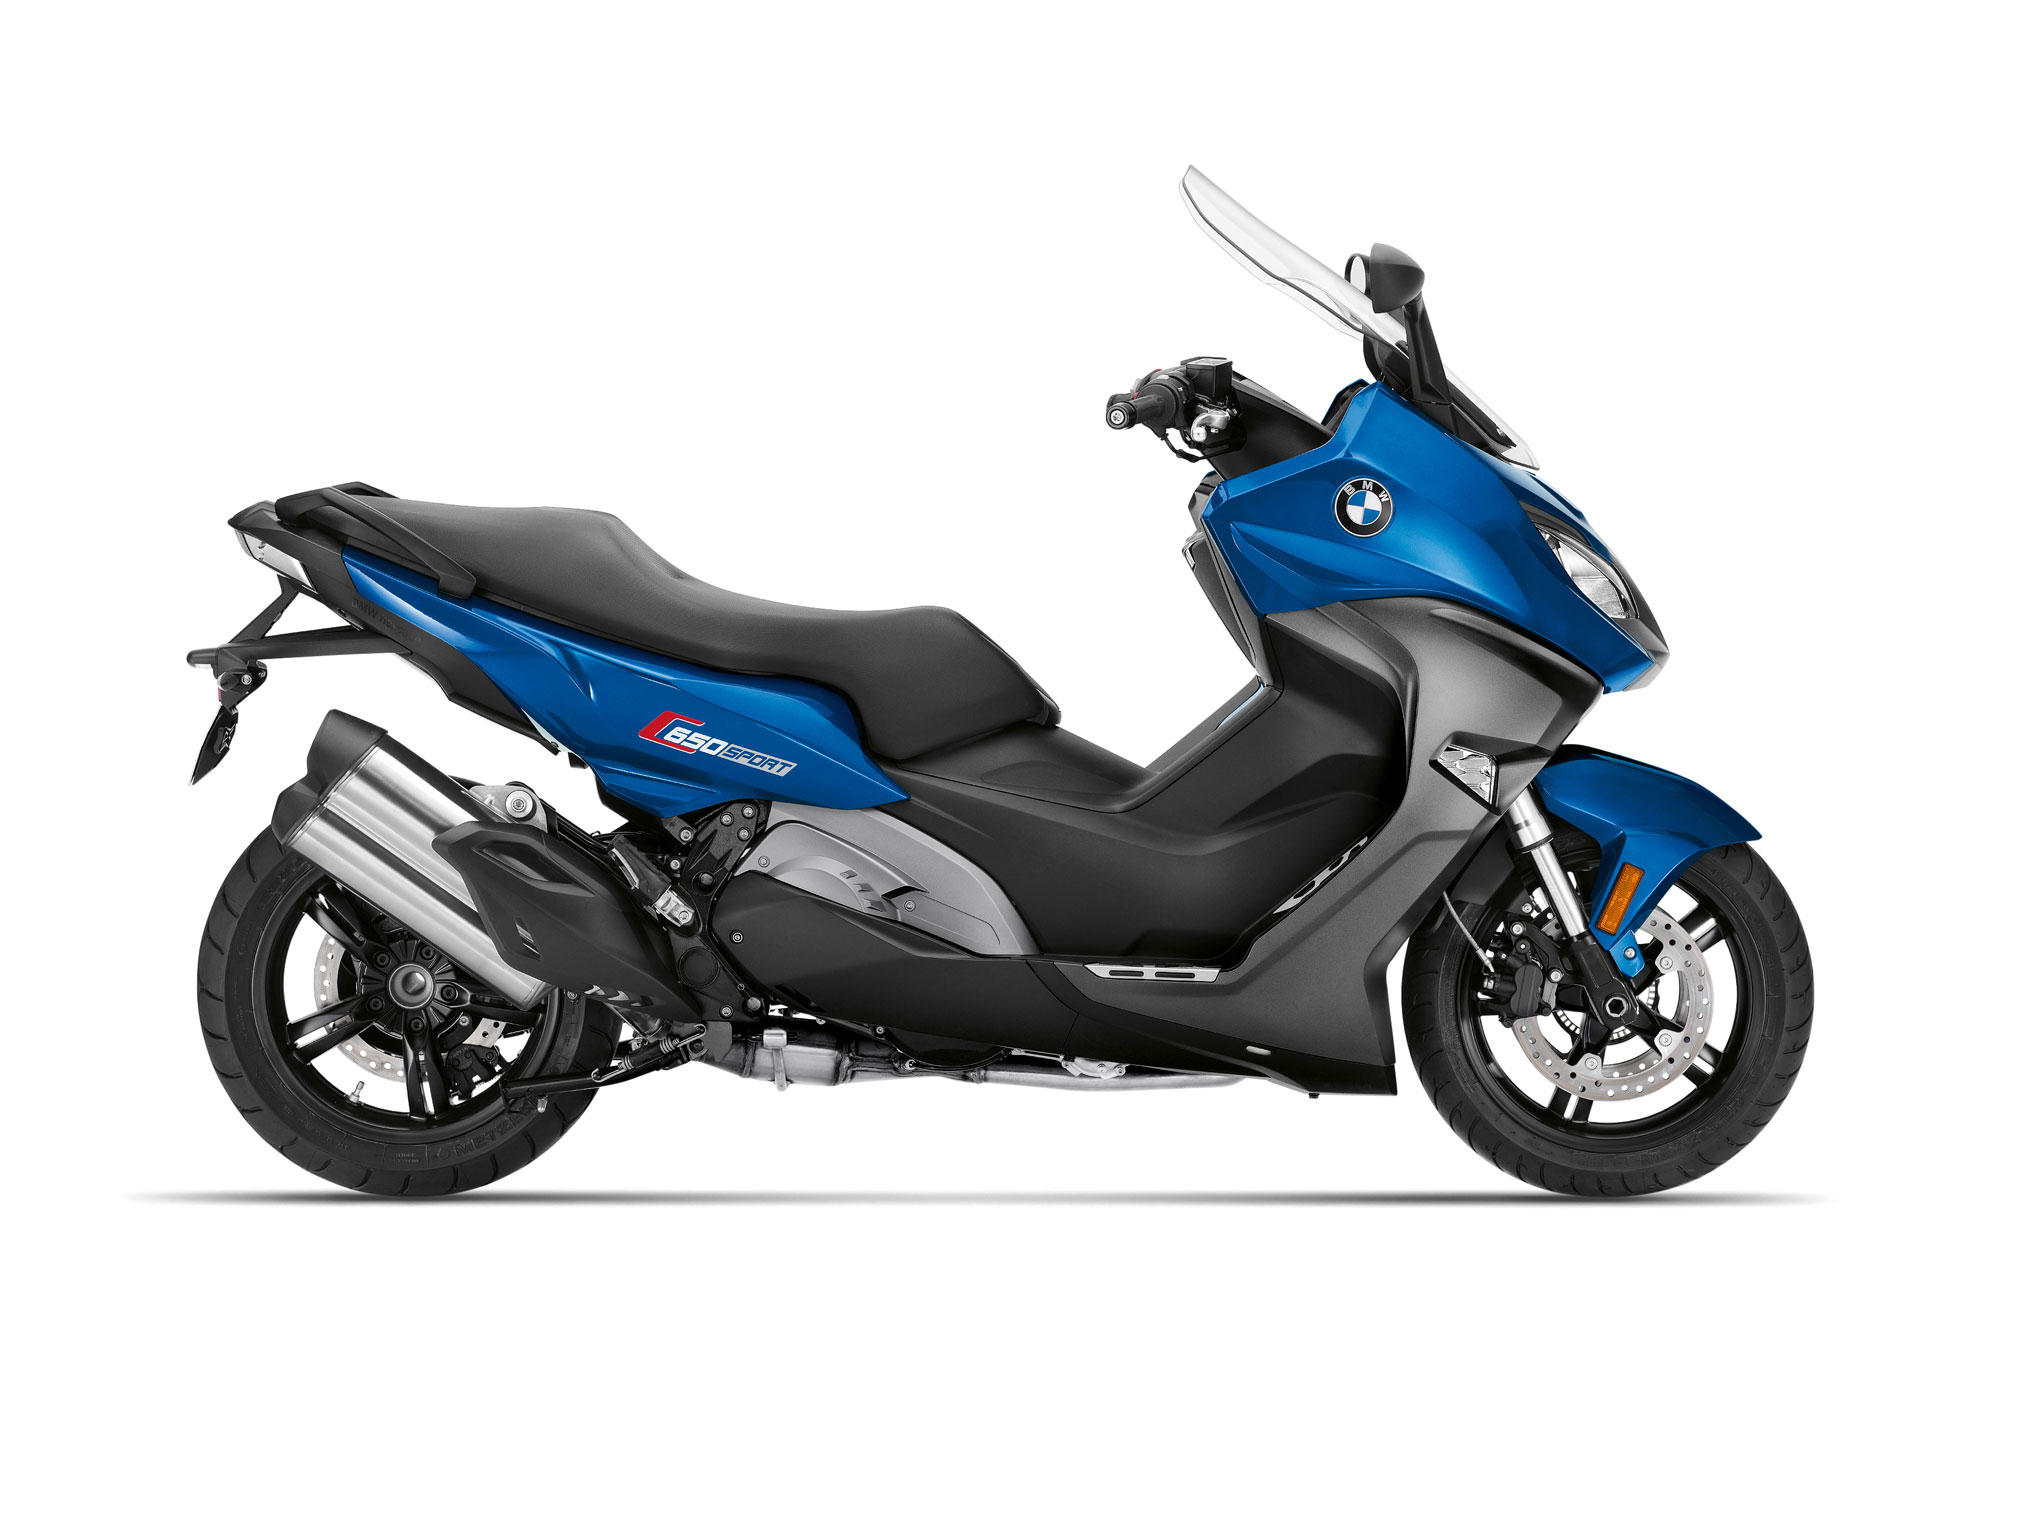 2020 BMW C650 Sport Guide • Total Motorcycle